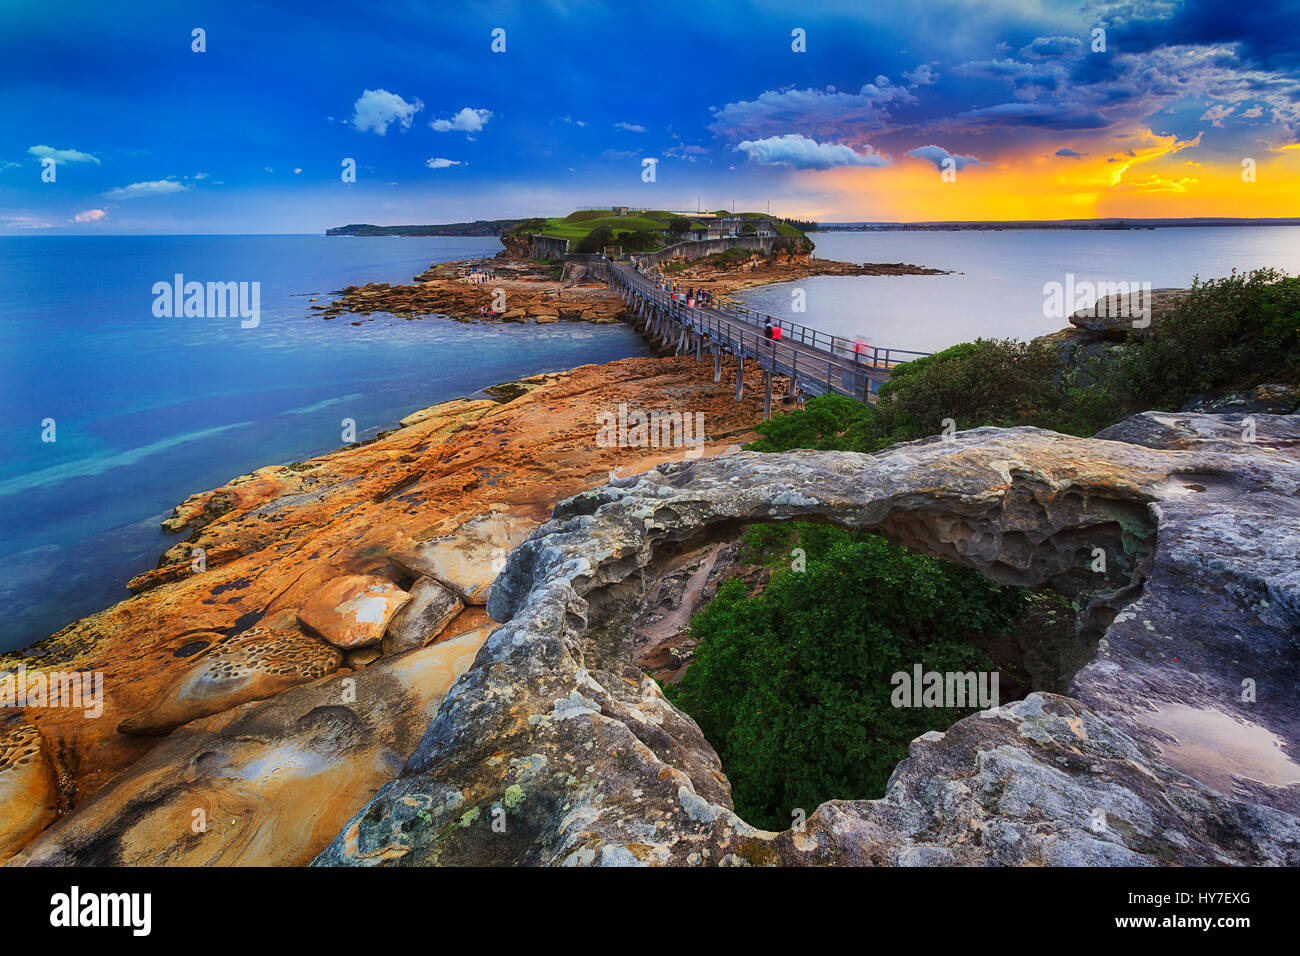 Colourful sunset over Citadel on Bare Island in Sydney's Botany Bay coastal area. Stormy weather and rugged - Stock Image